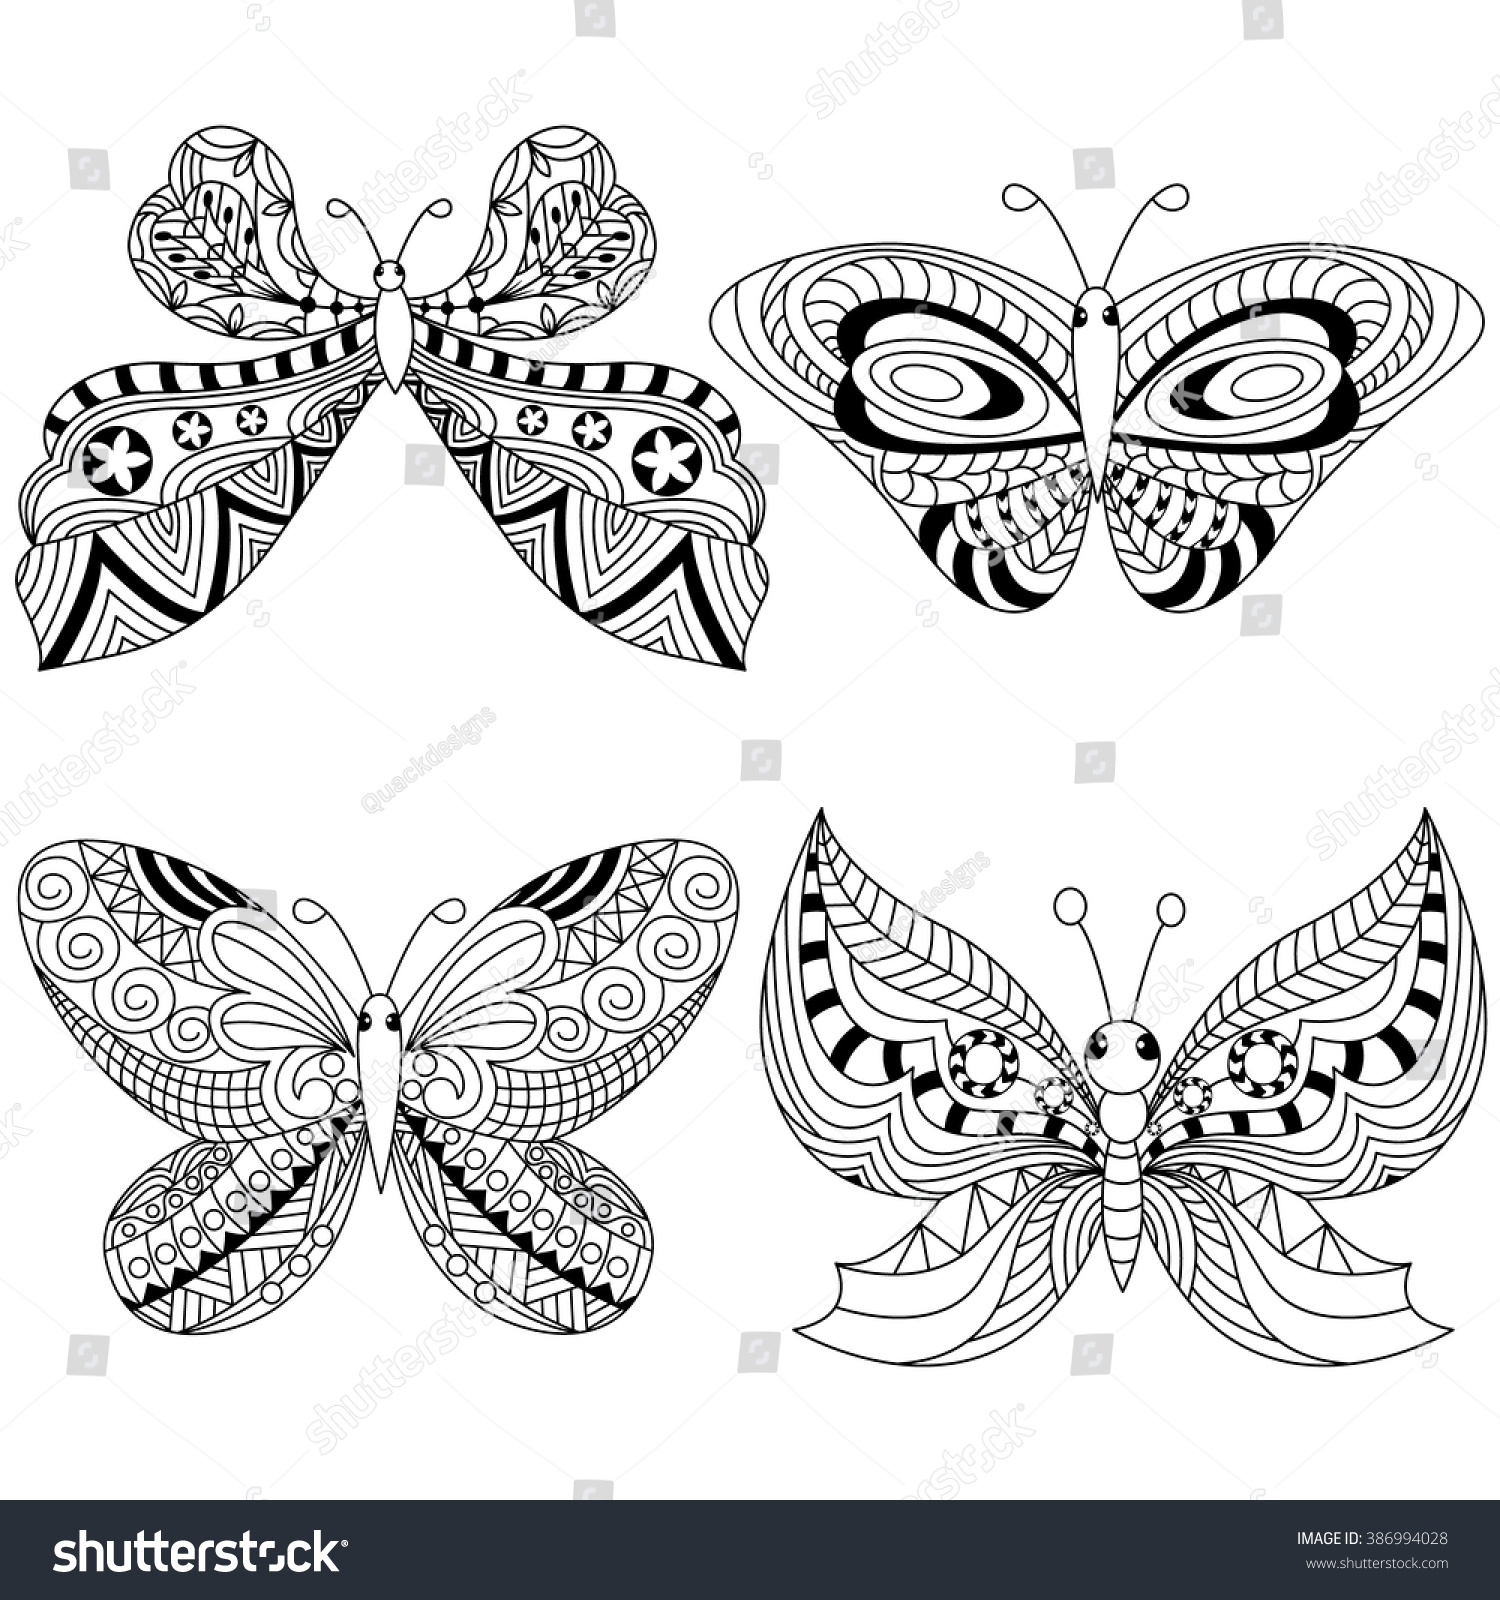 zen tangle stylized black butterfly coloring stock vector